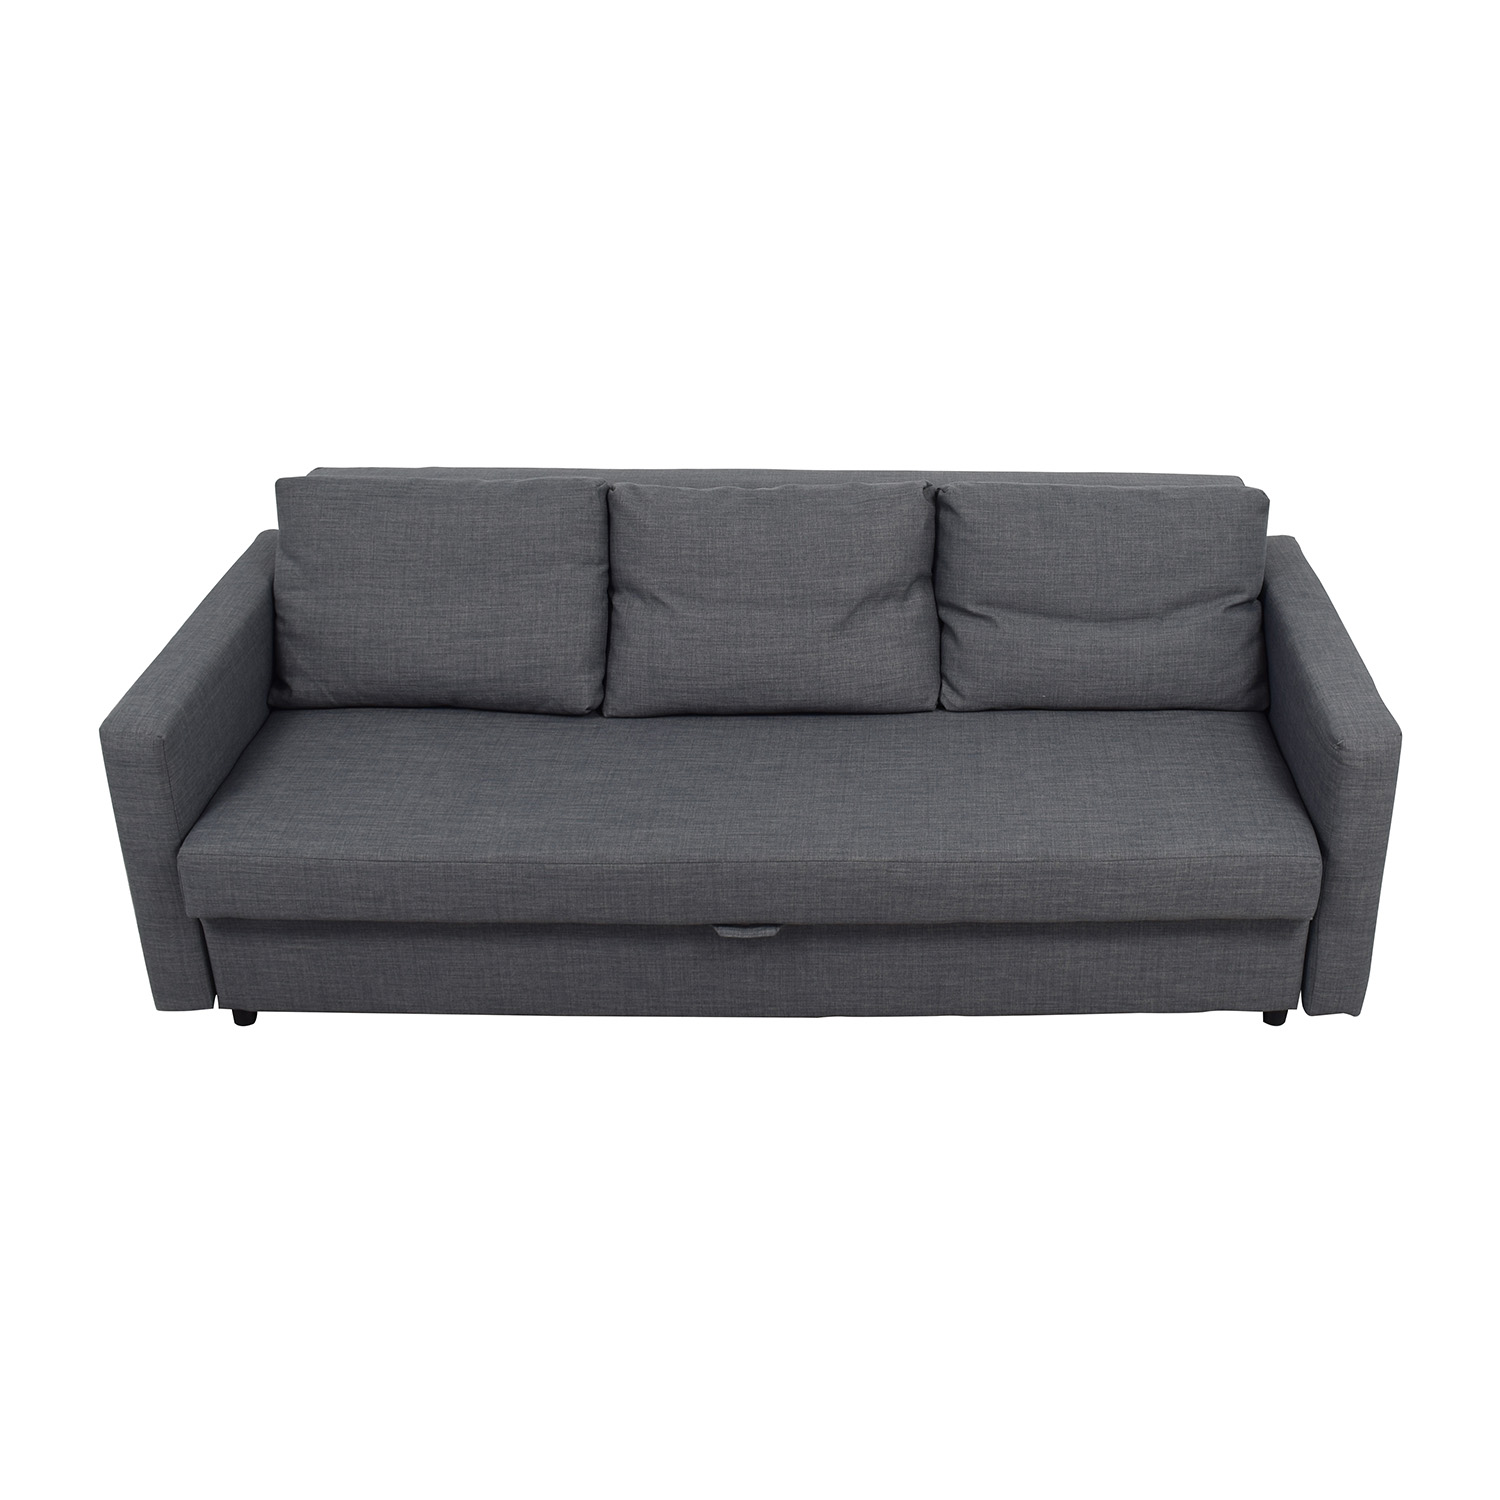 IKEA IKEA FRIHETEN Grey Sleeper sofa price